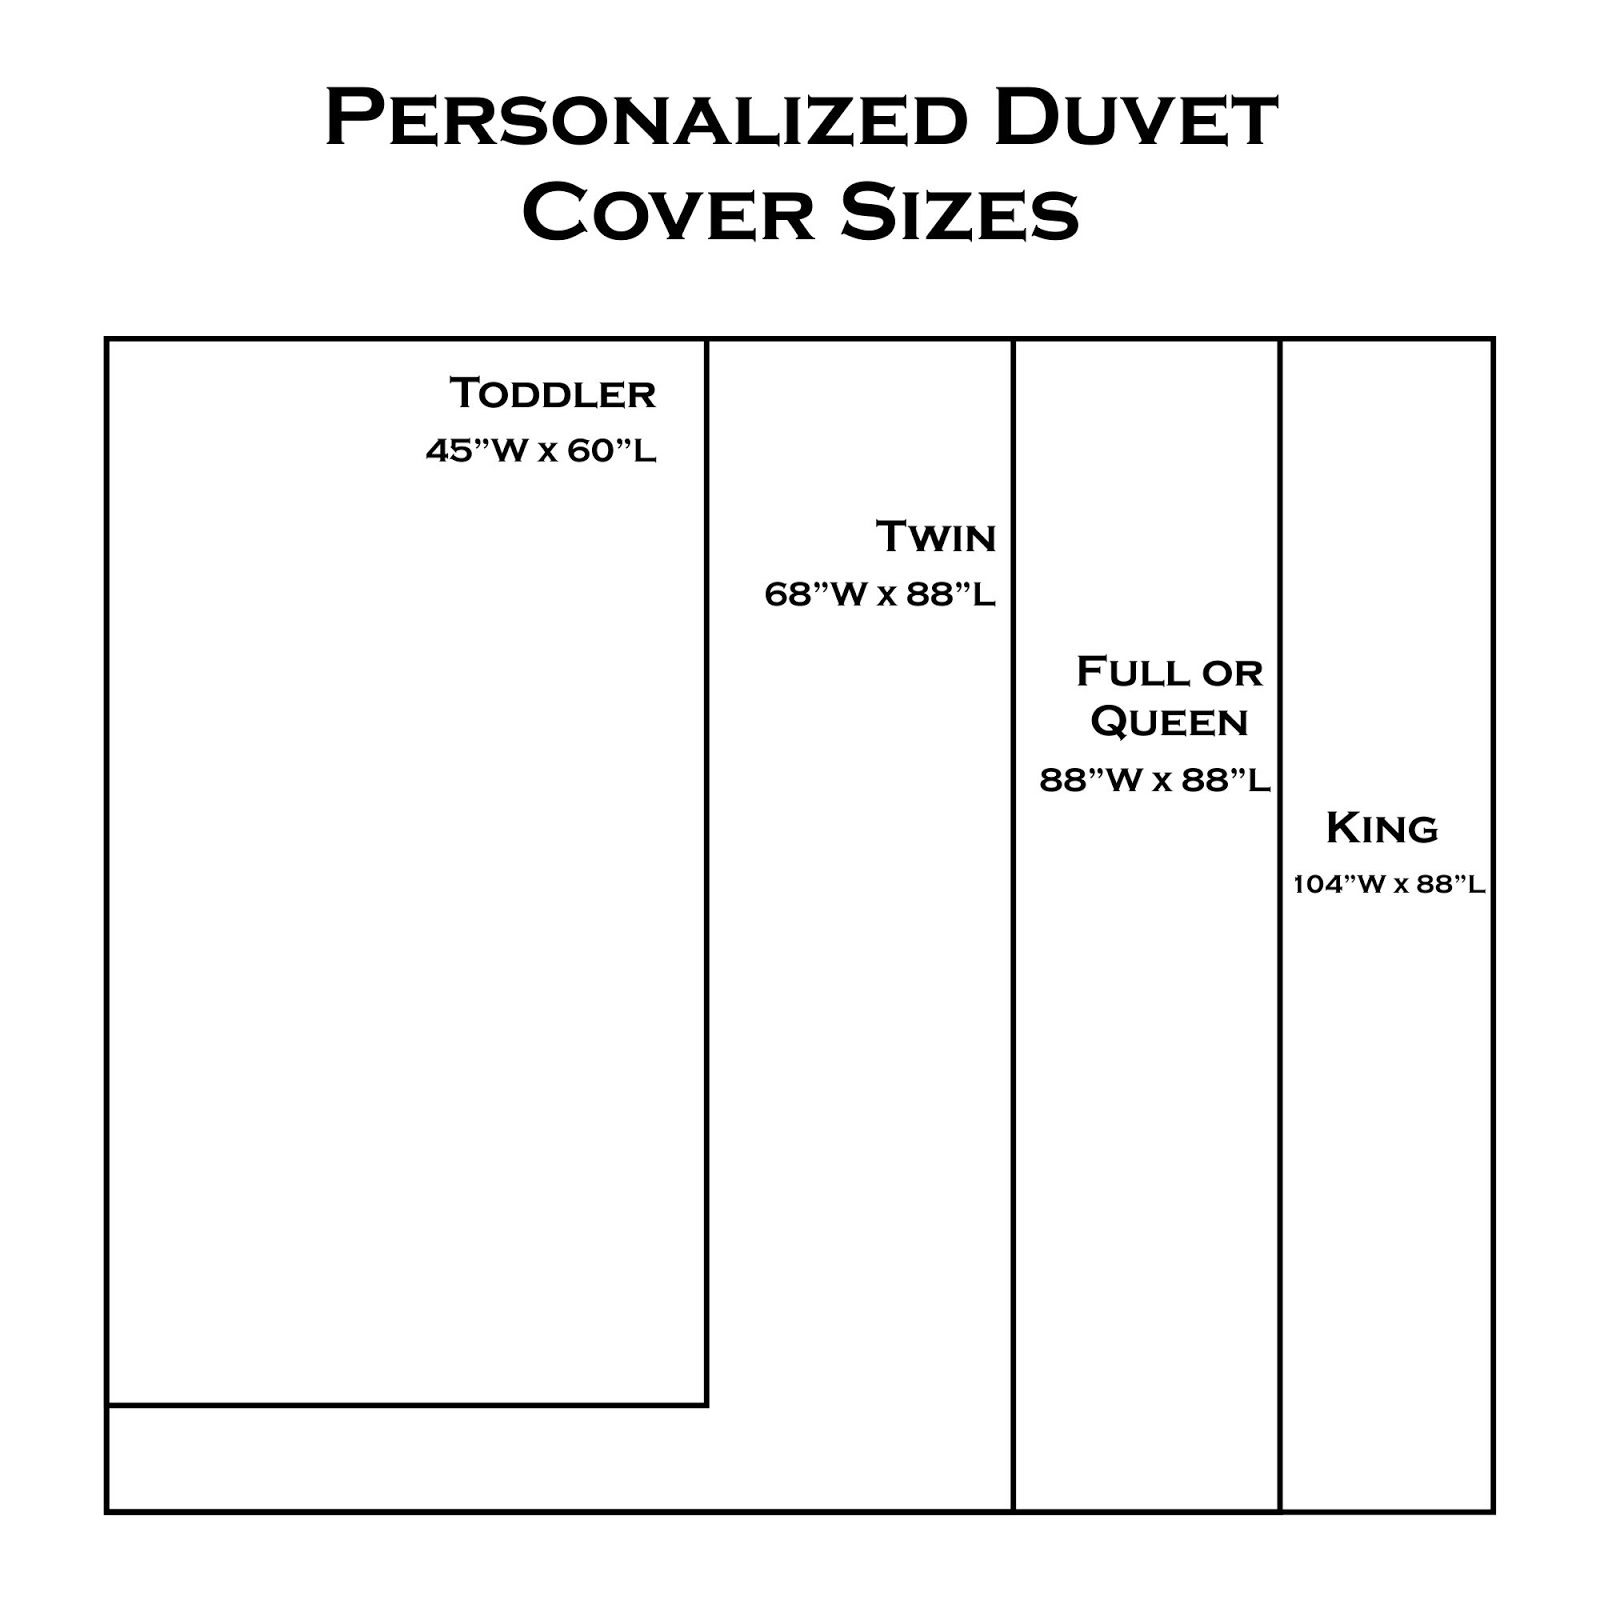 King Size Duvet Measurements